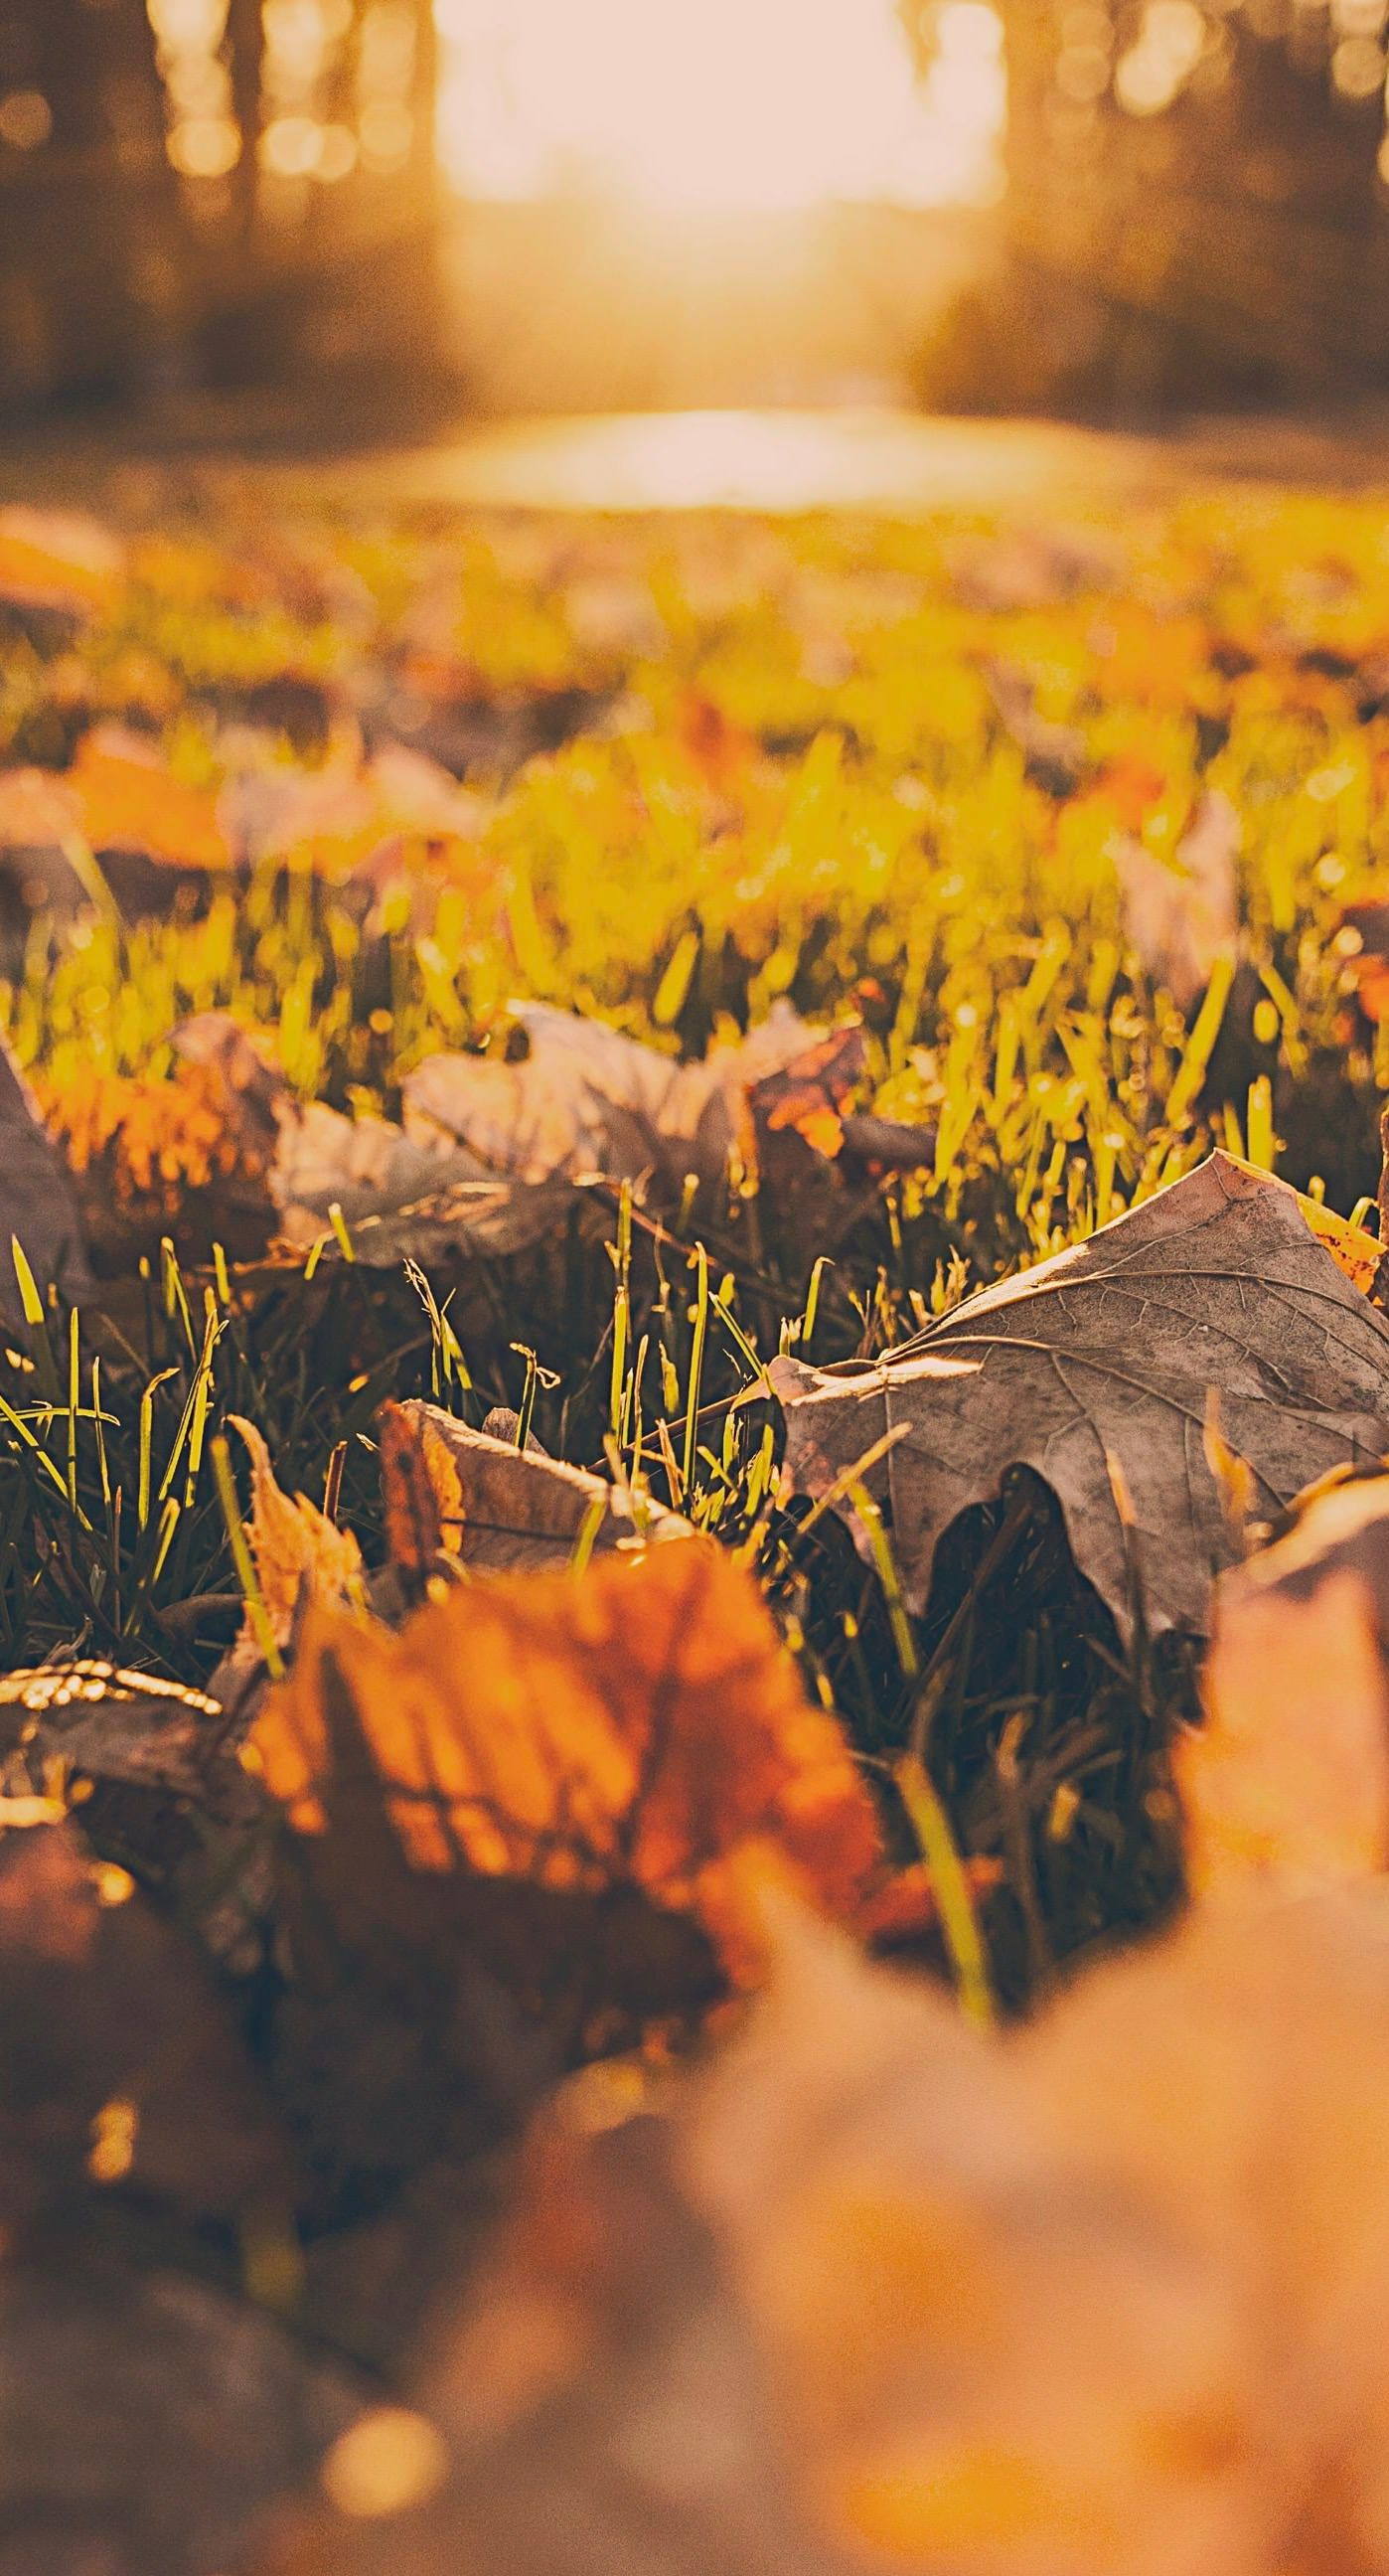 Landscape Dead Leaves Fall Blur Wallpaper Sc Iphone6splus Cute Fall Wallpaper Iphone Wallpaper Fall Fall Wallpaper